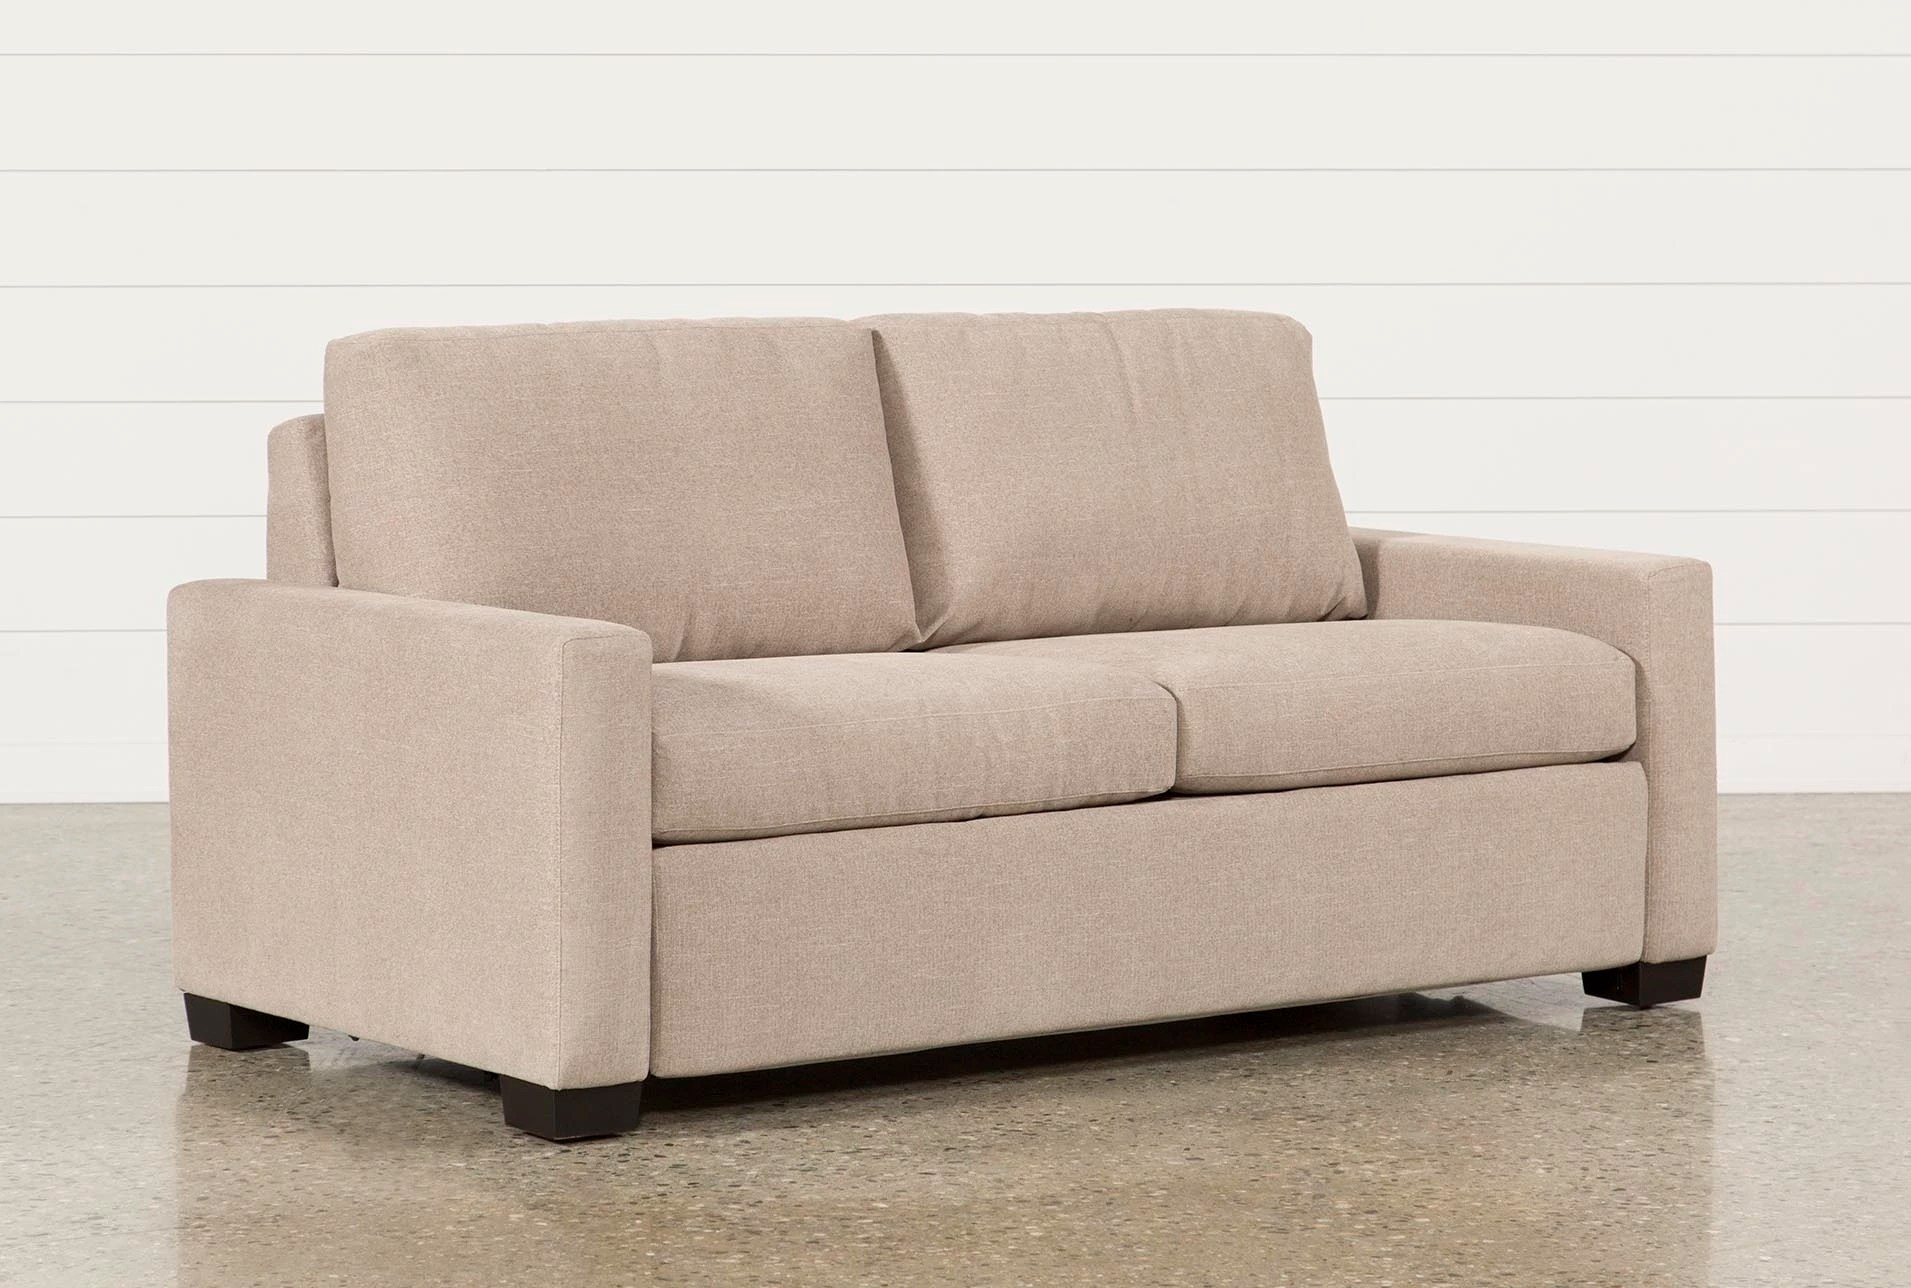 sofa sleeper clearance baja convert a couch bed assembly beds talentneeds